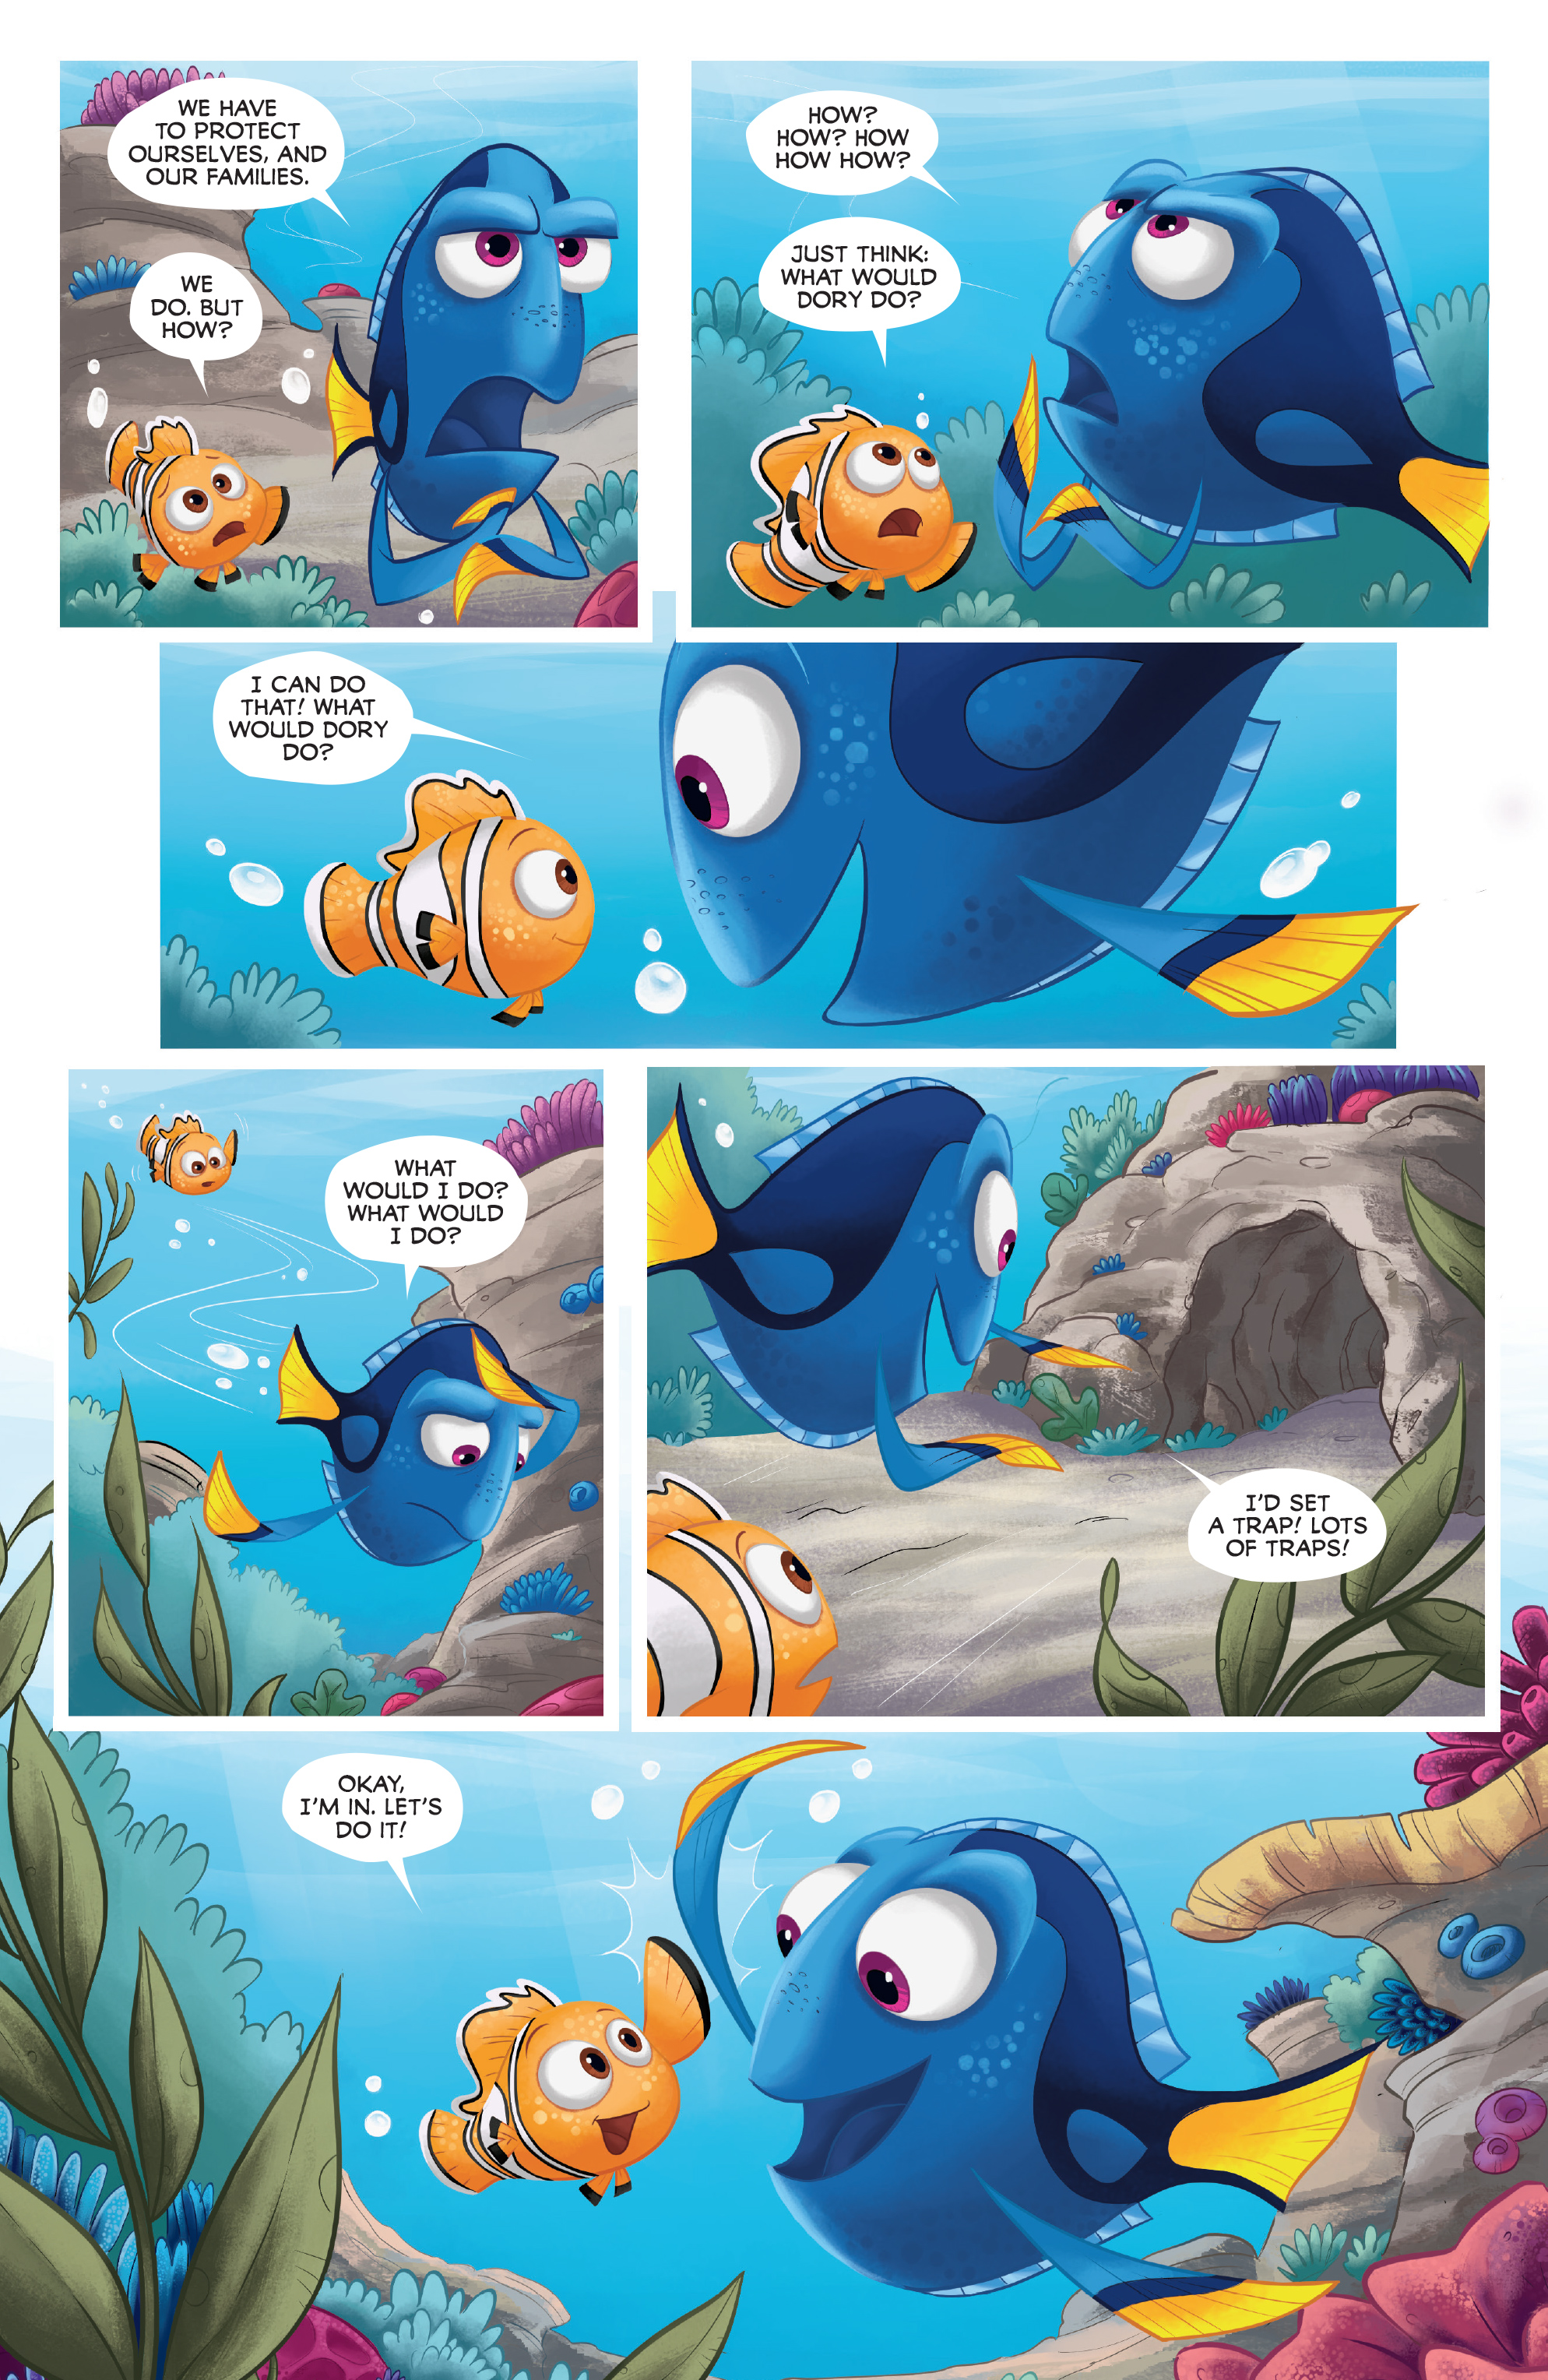 Read online Disney Pixar Finding Dory comic -  Issue #4 - 14